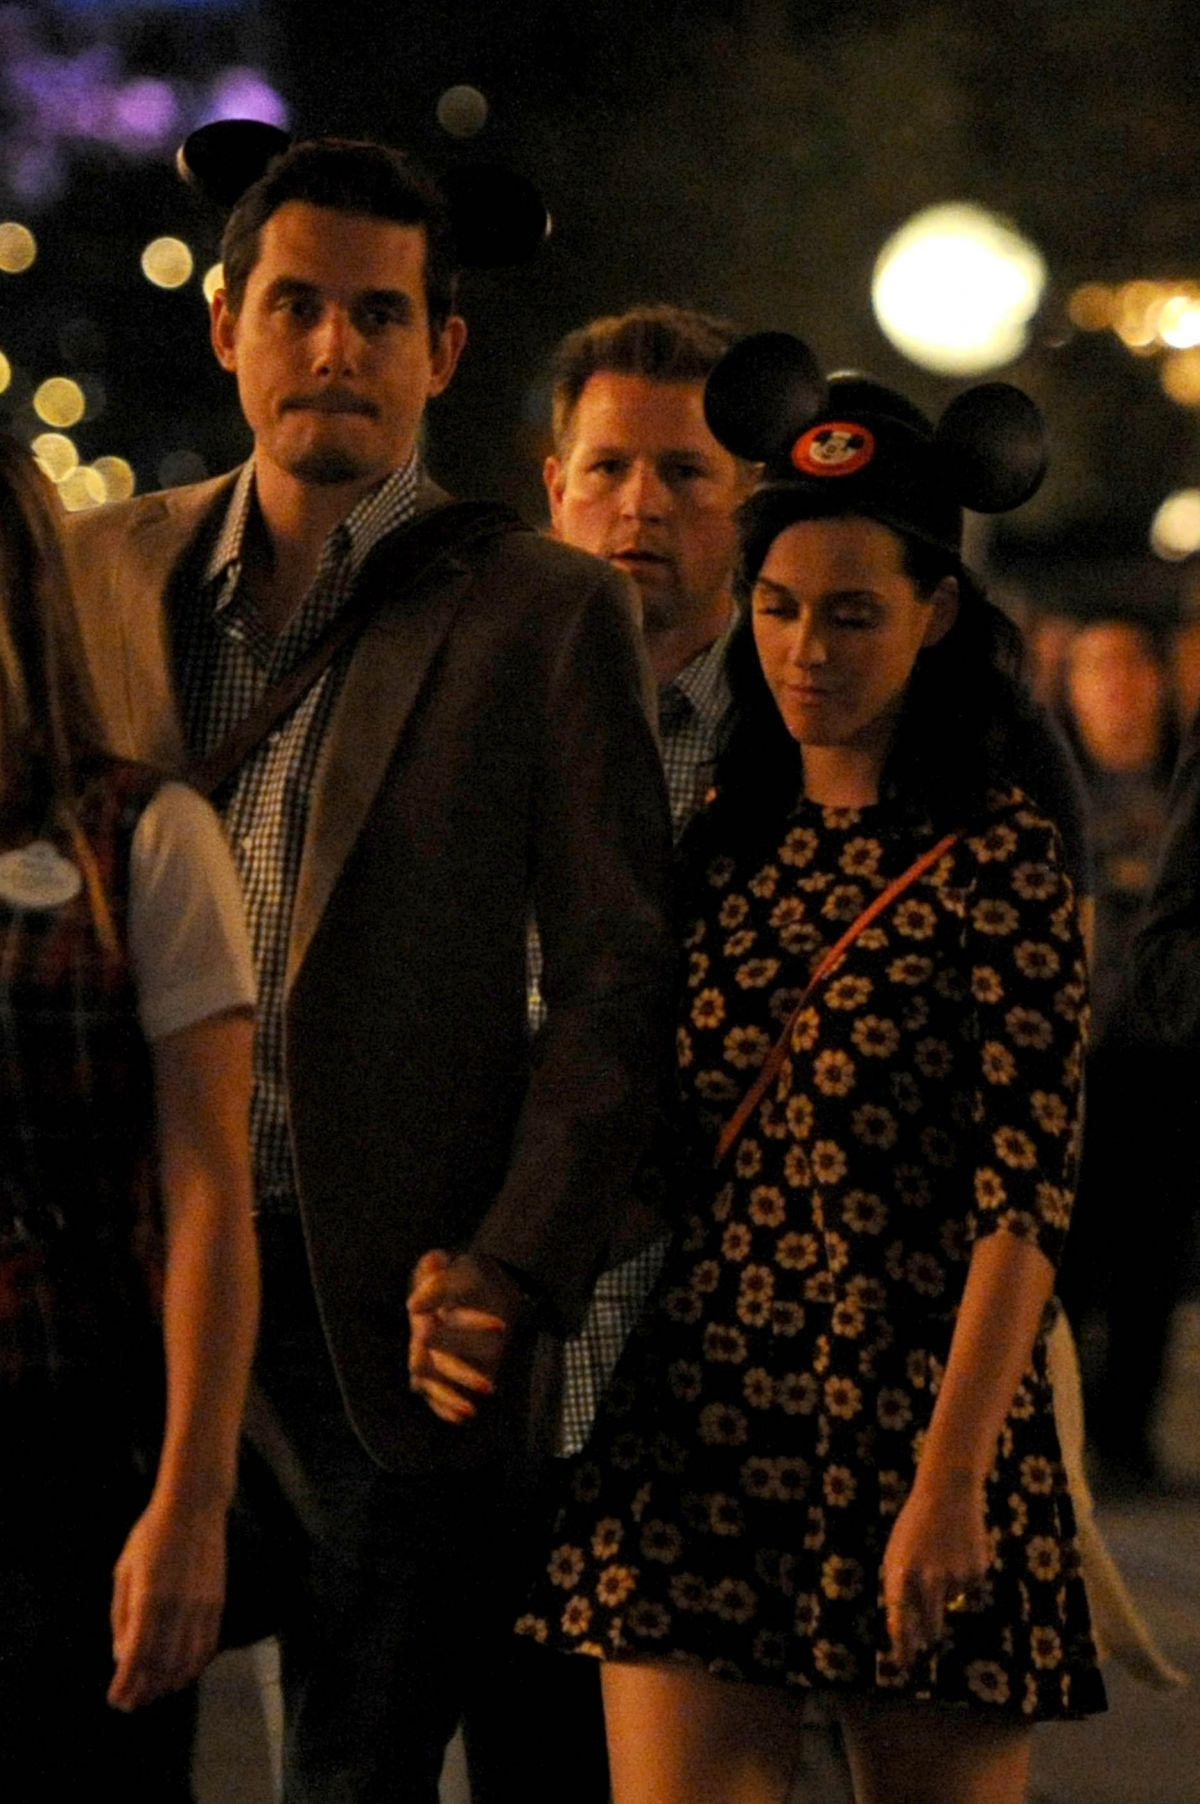 Katy Perry A Night Out In Disneyland In Anahiem